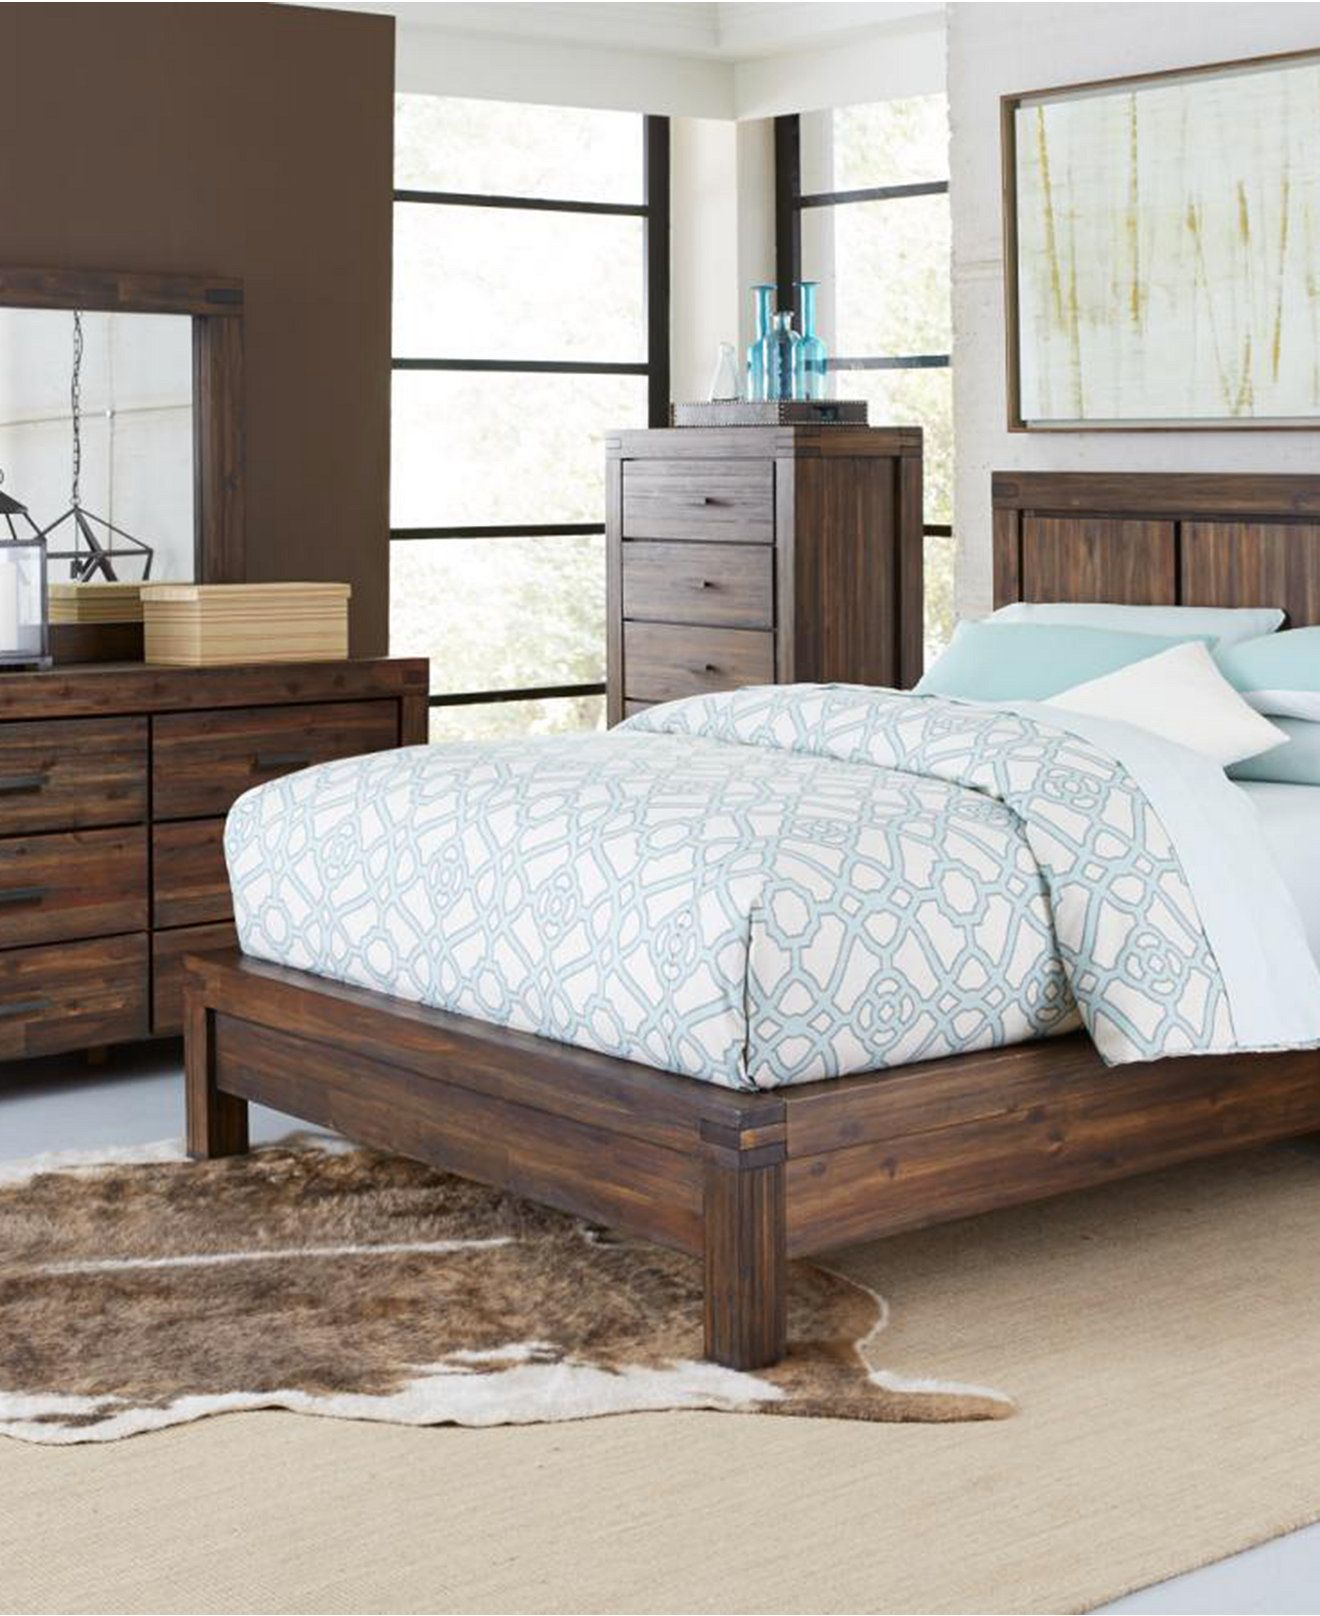 avondale platform bedroom furniture collection lorrie 12189 | a3c9ea26c66c5c7b555100a2812241ce